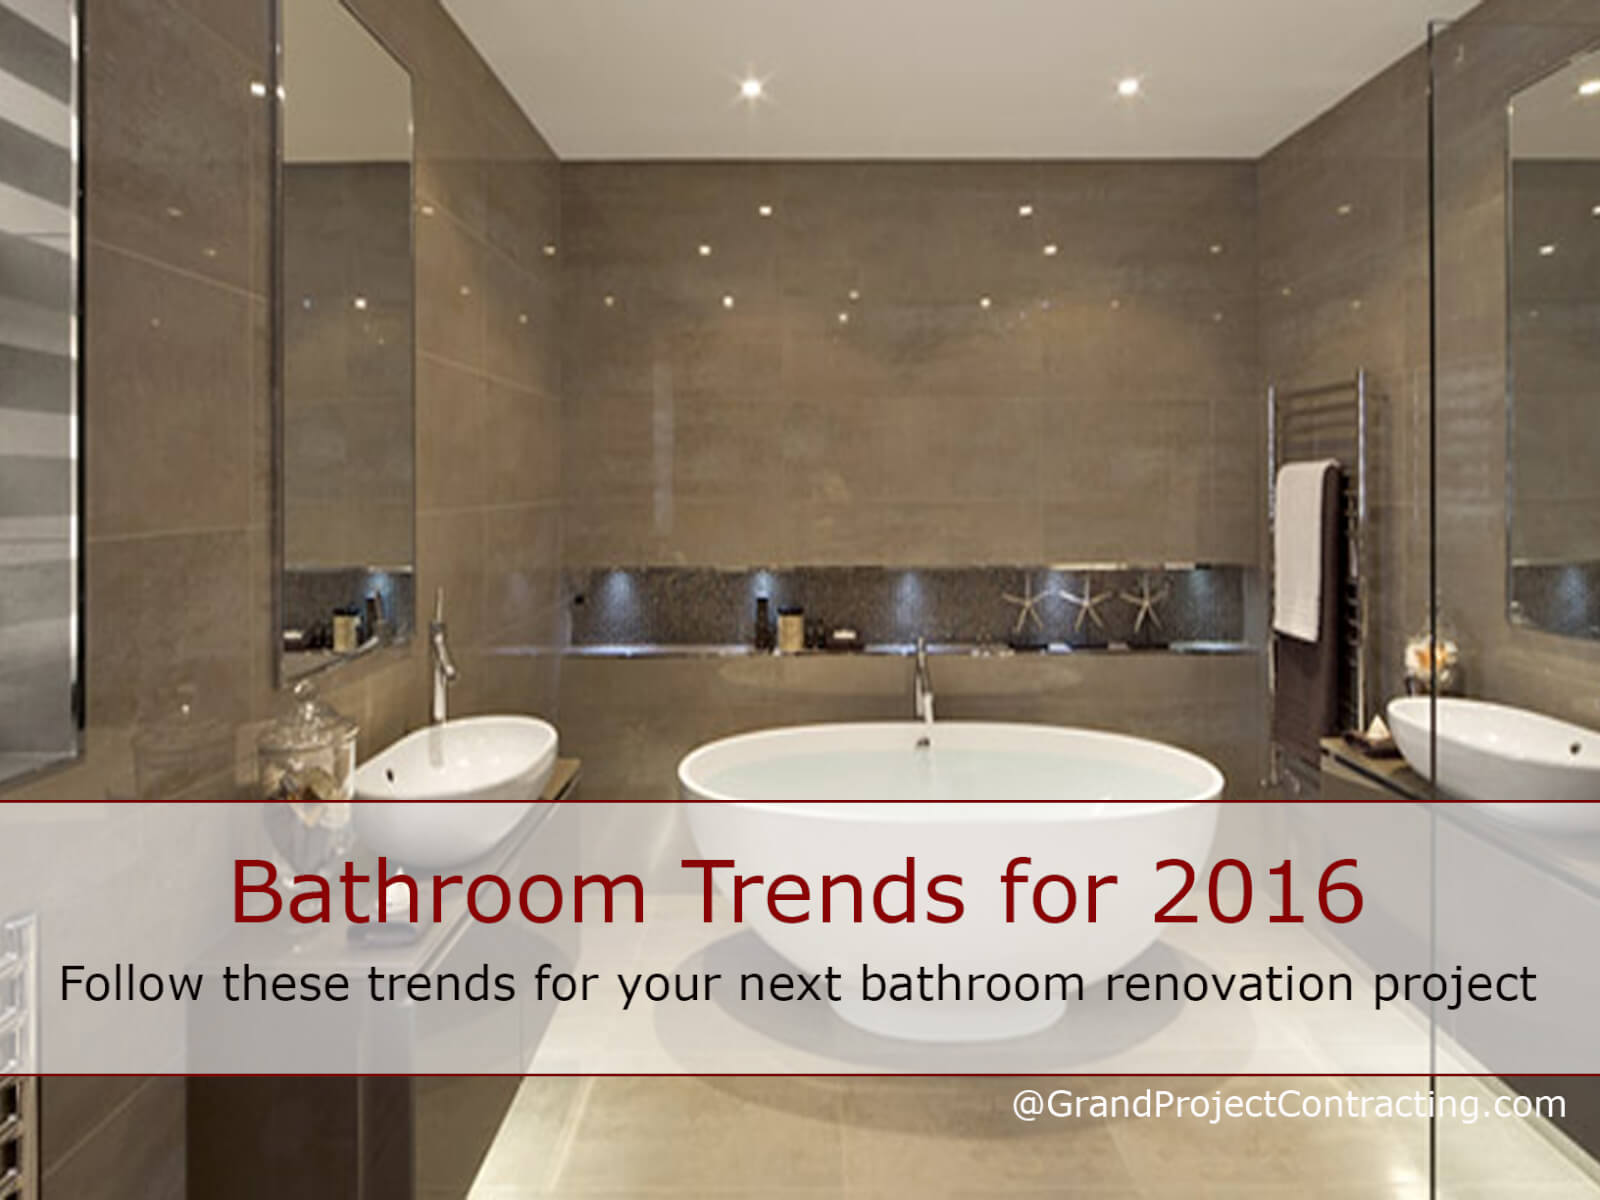 Bathroom trends for 2016 bathroom renovation contractor for New bathroom trends 2016